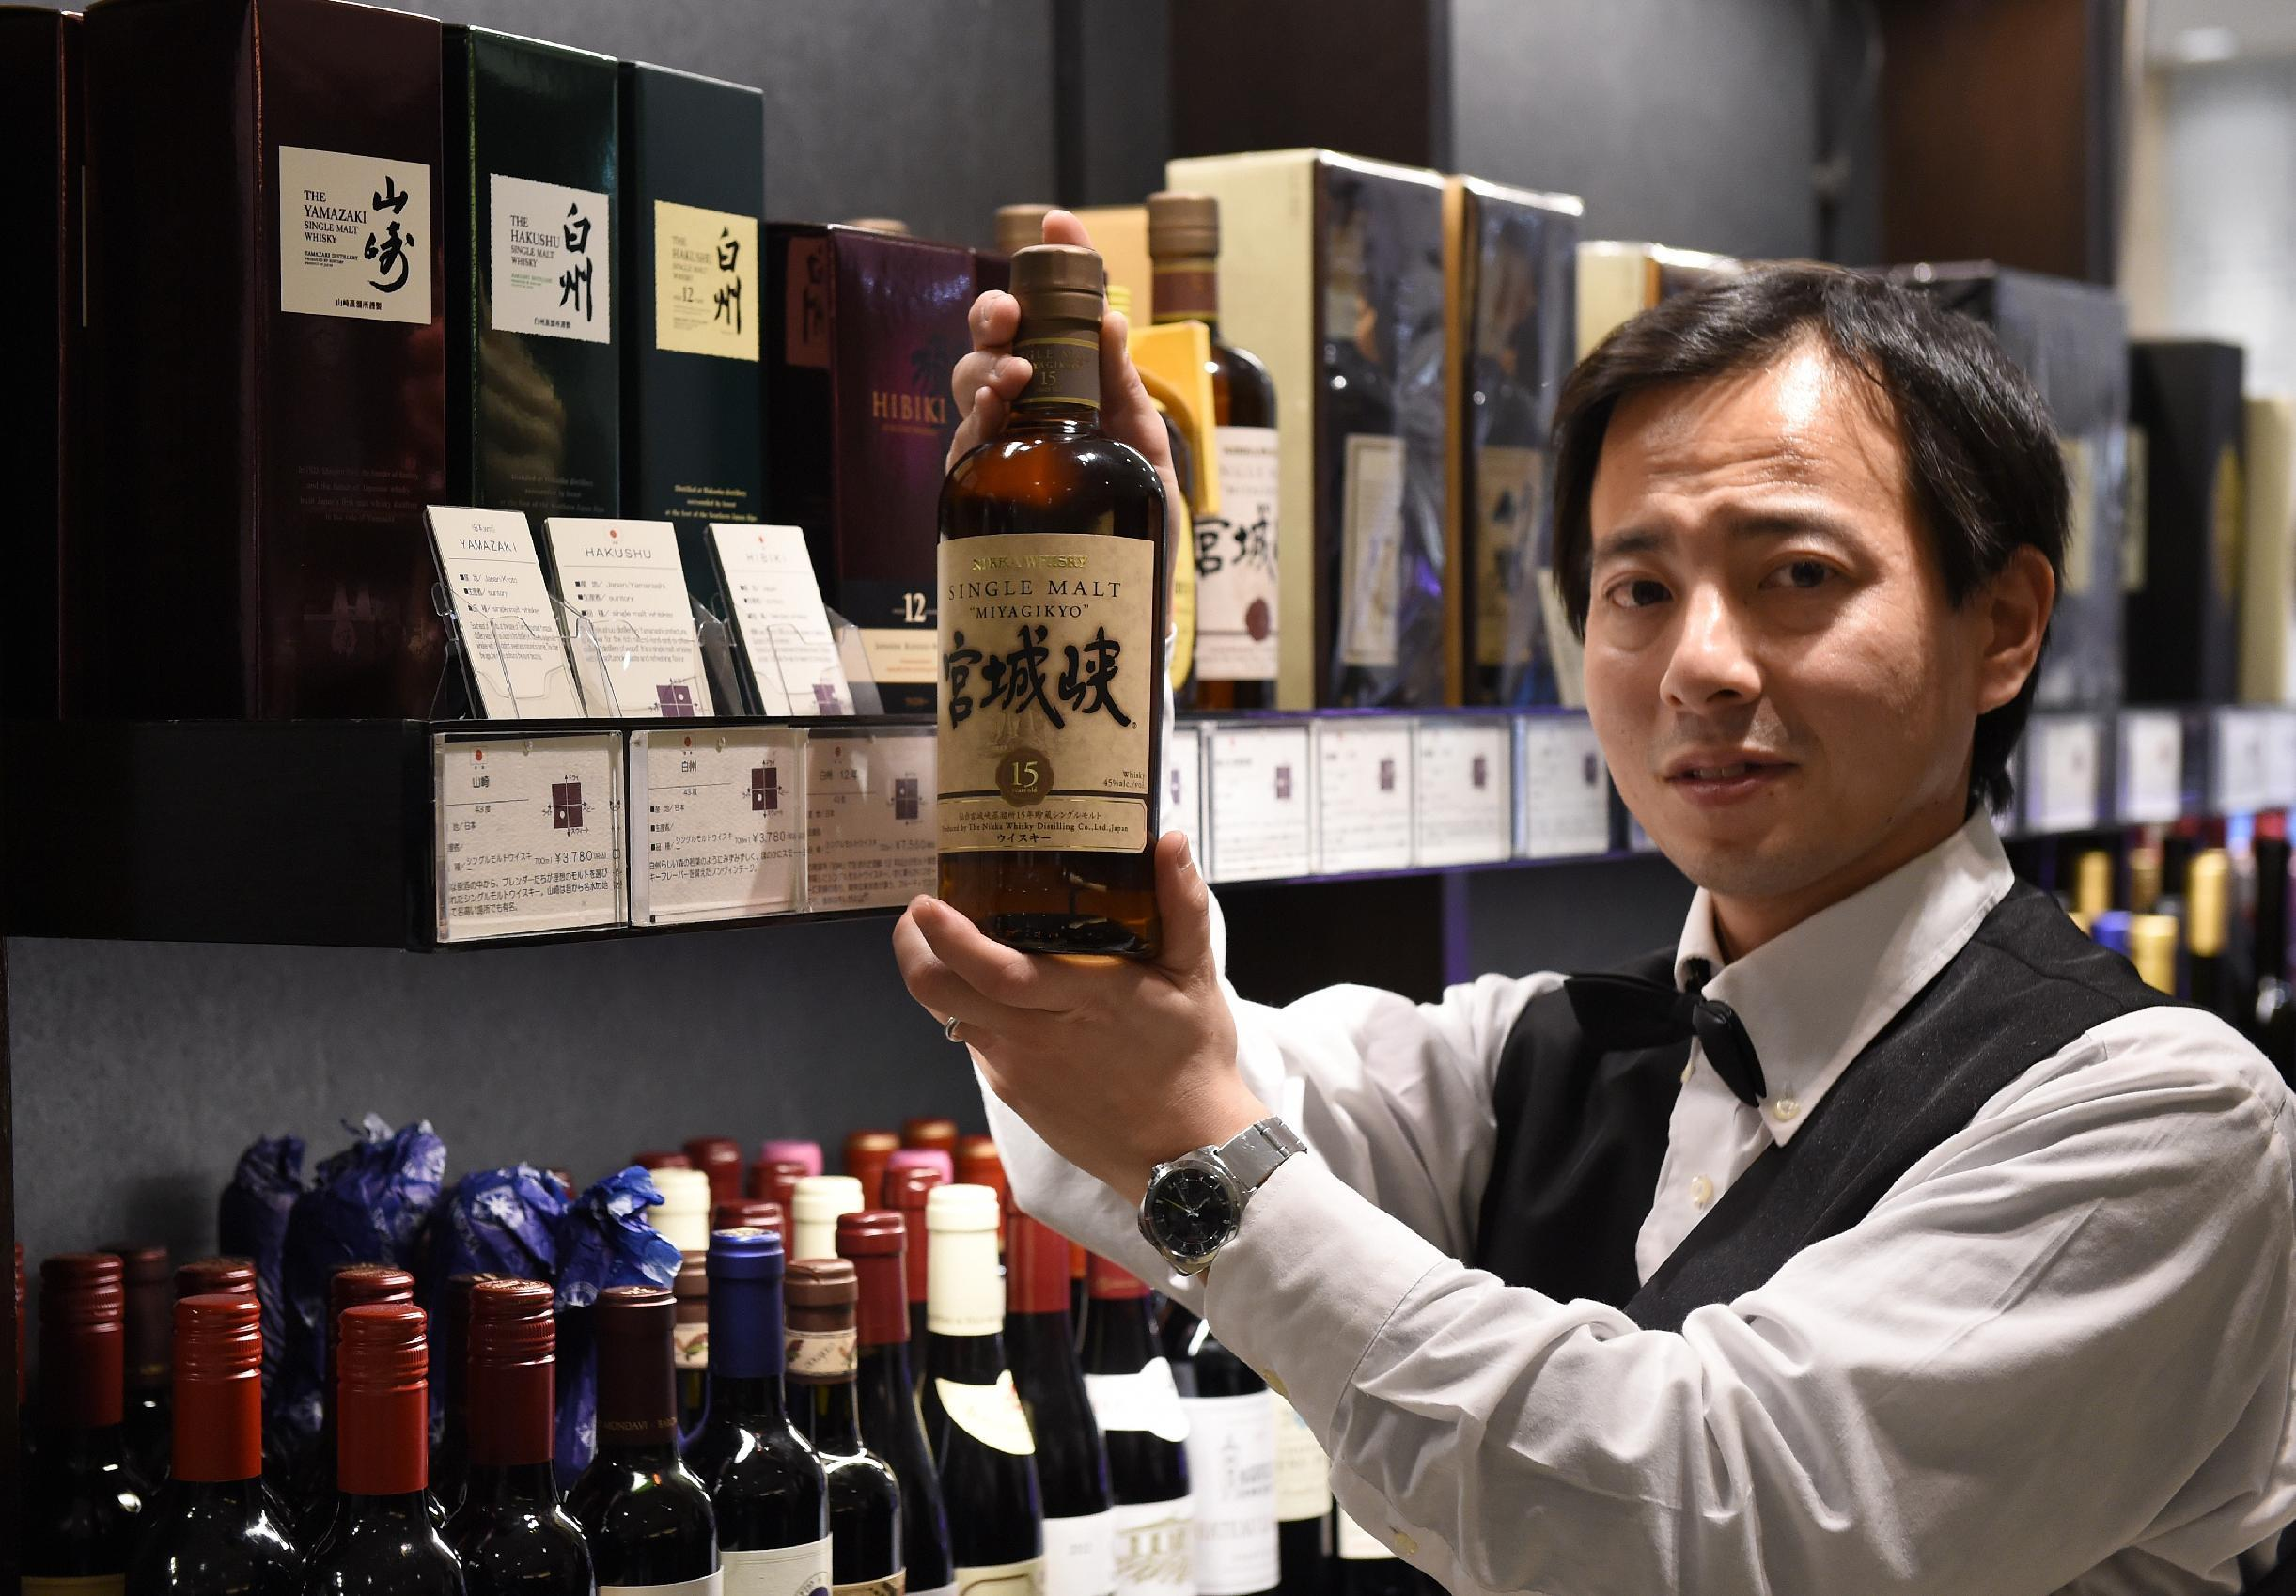 TV drama, plaudits: a cocktail of success for Japan whisky